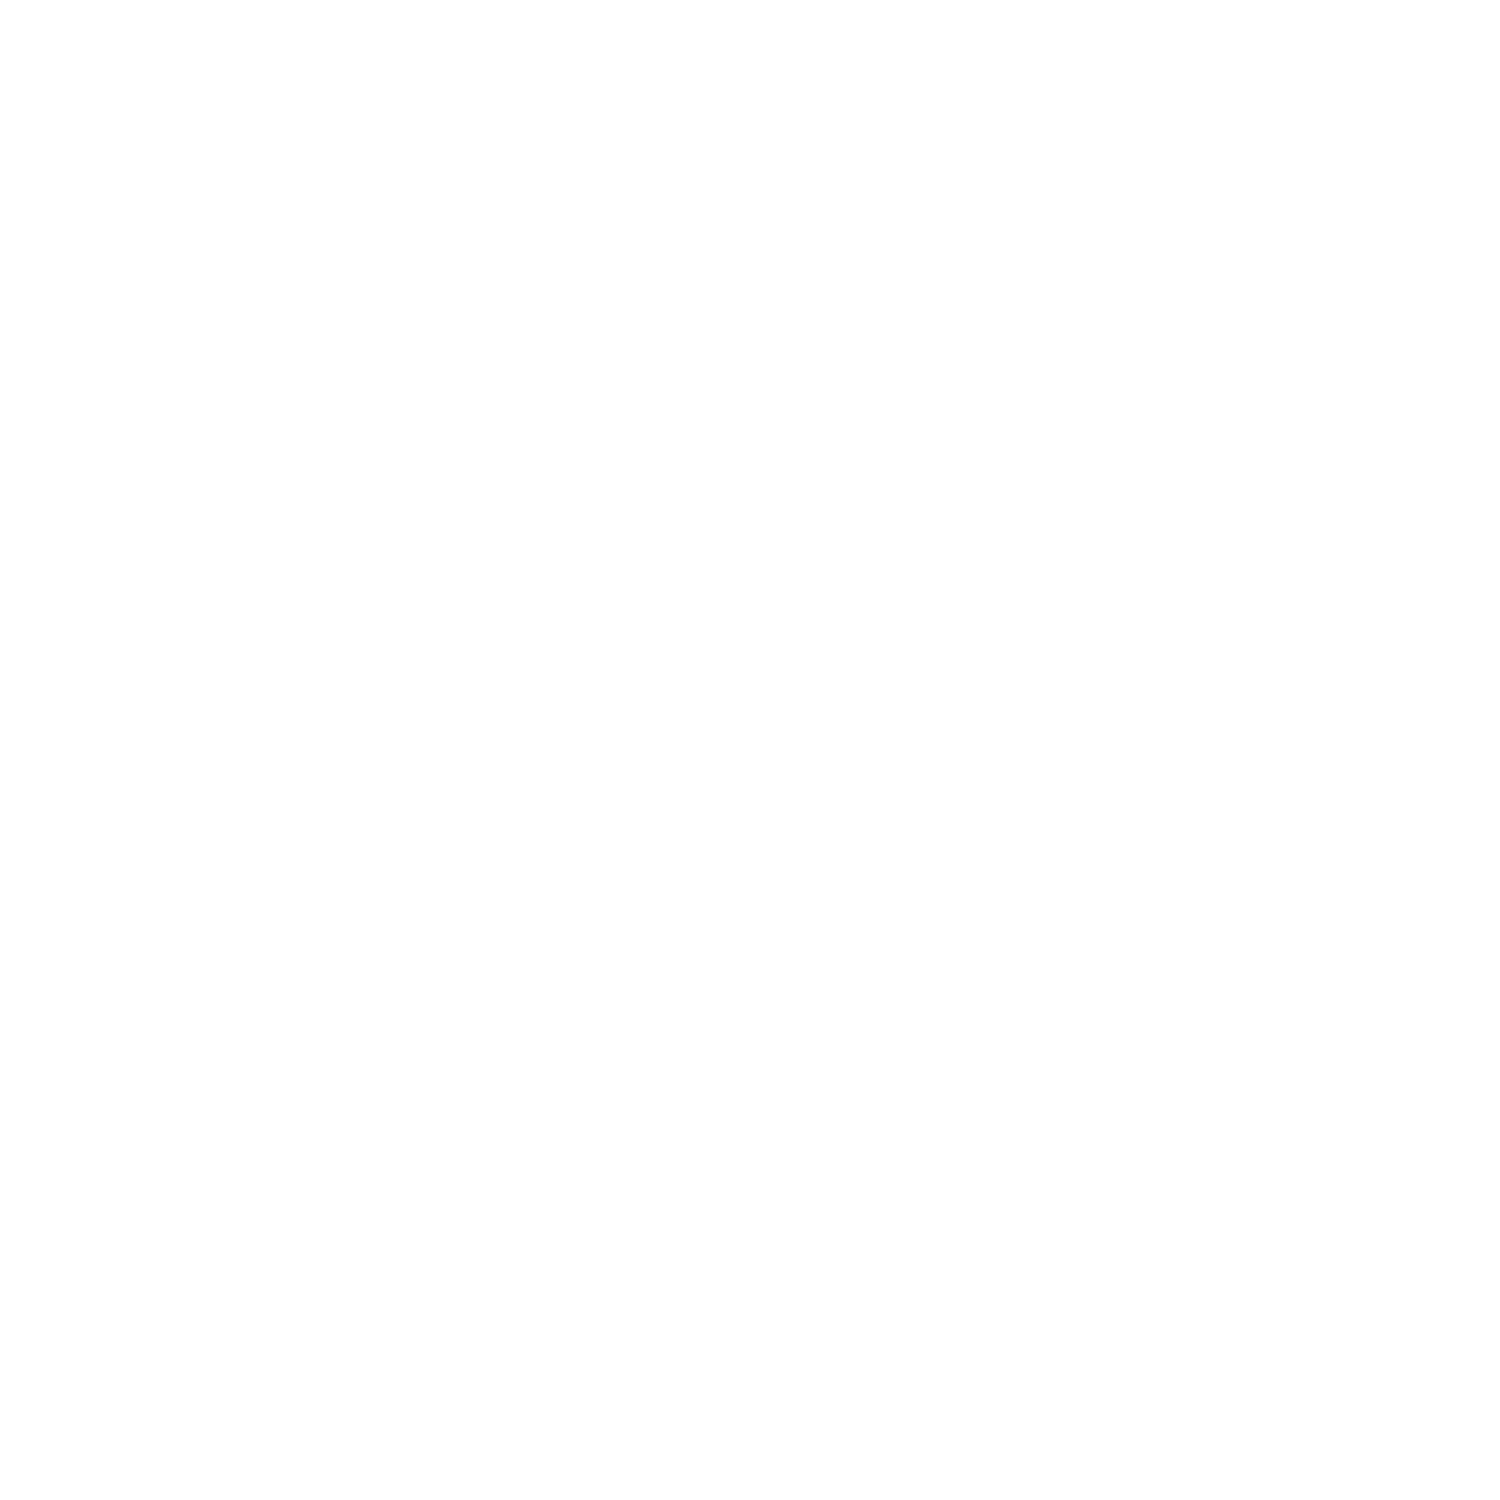 IncDev Alliance